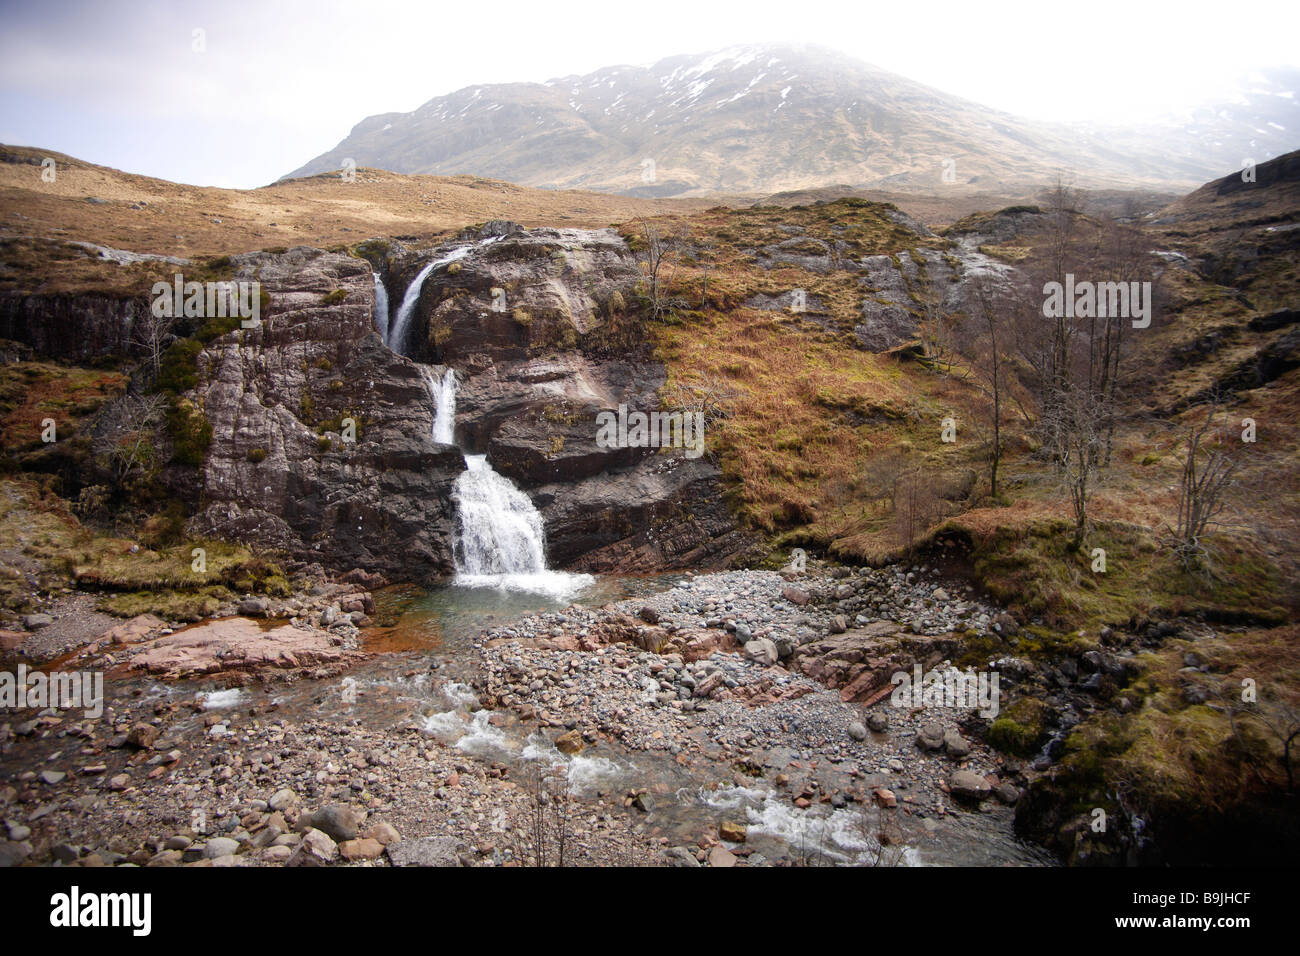 Wide angle study of a waterfall in landscape. - Stock Image